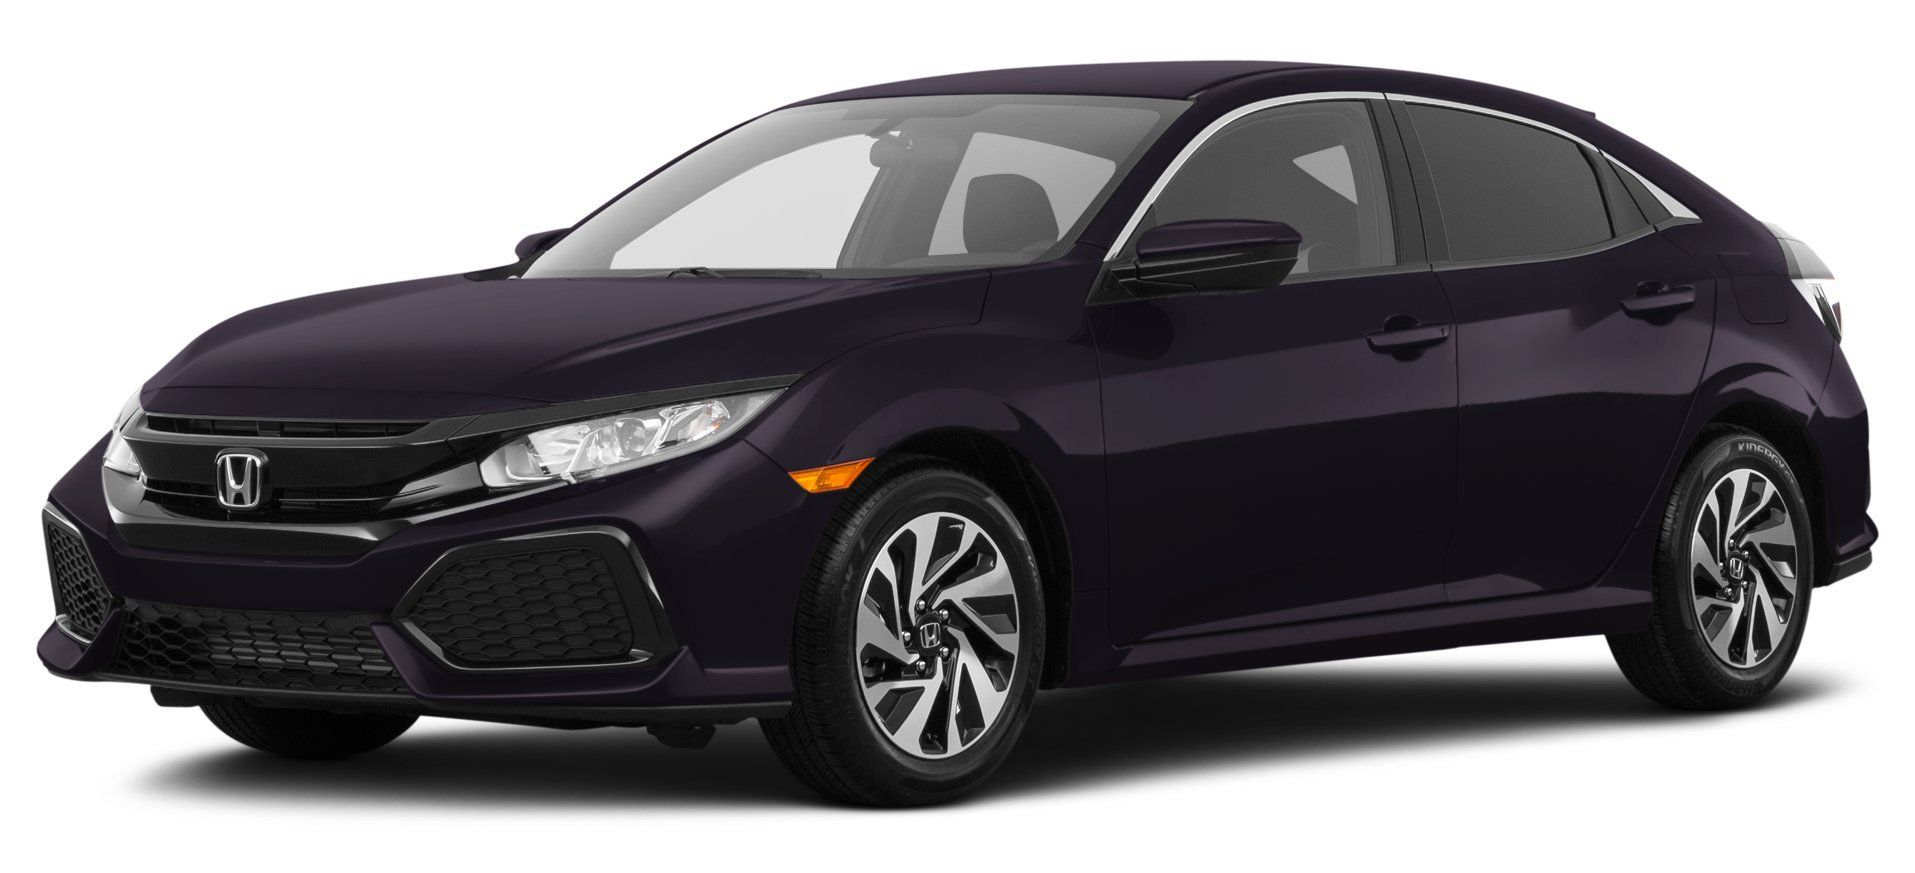 2017 Honda Civic LX, CVT 2018 honda accord, Honda accord